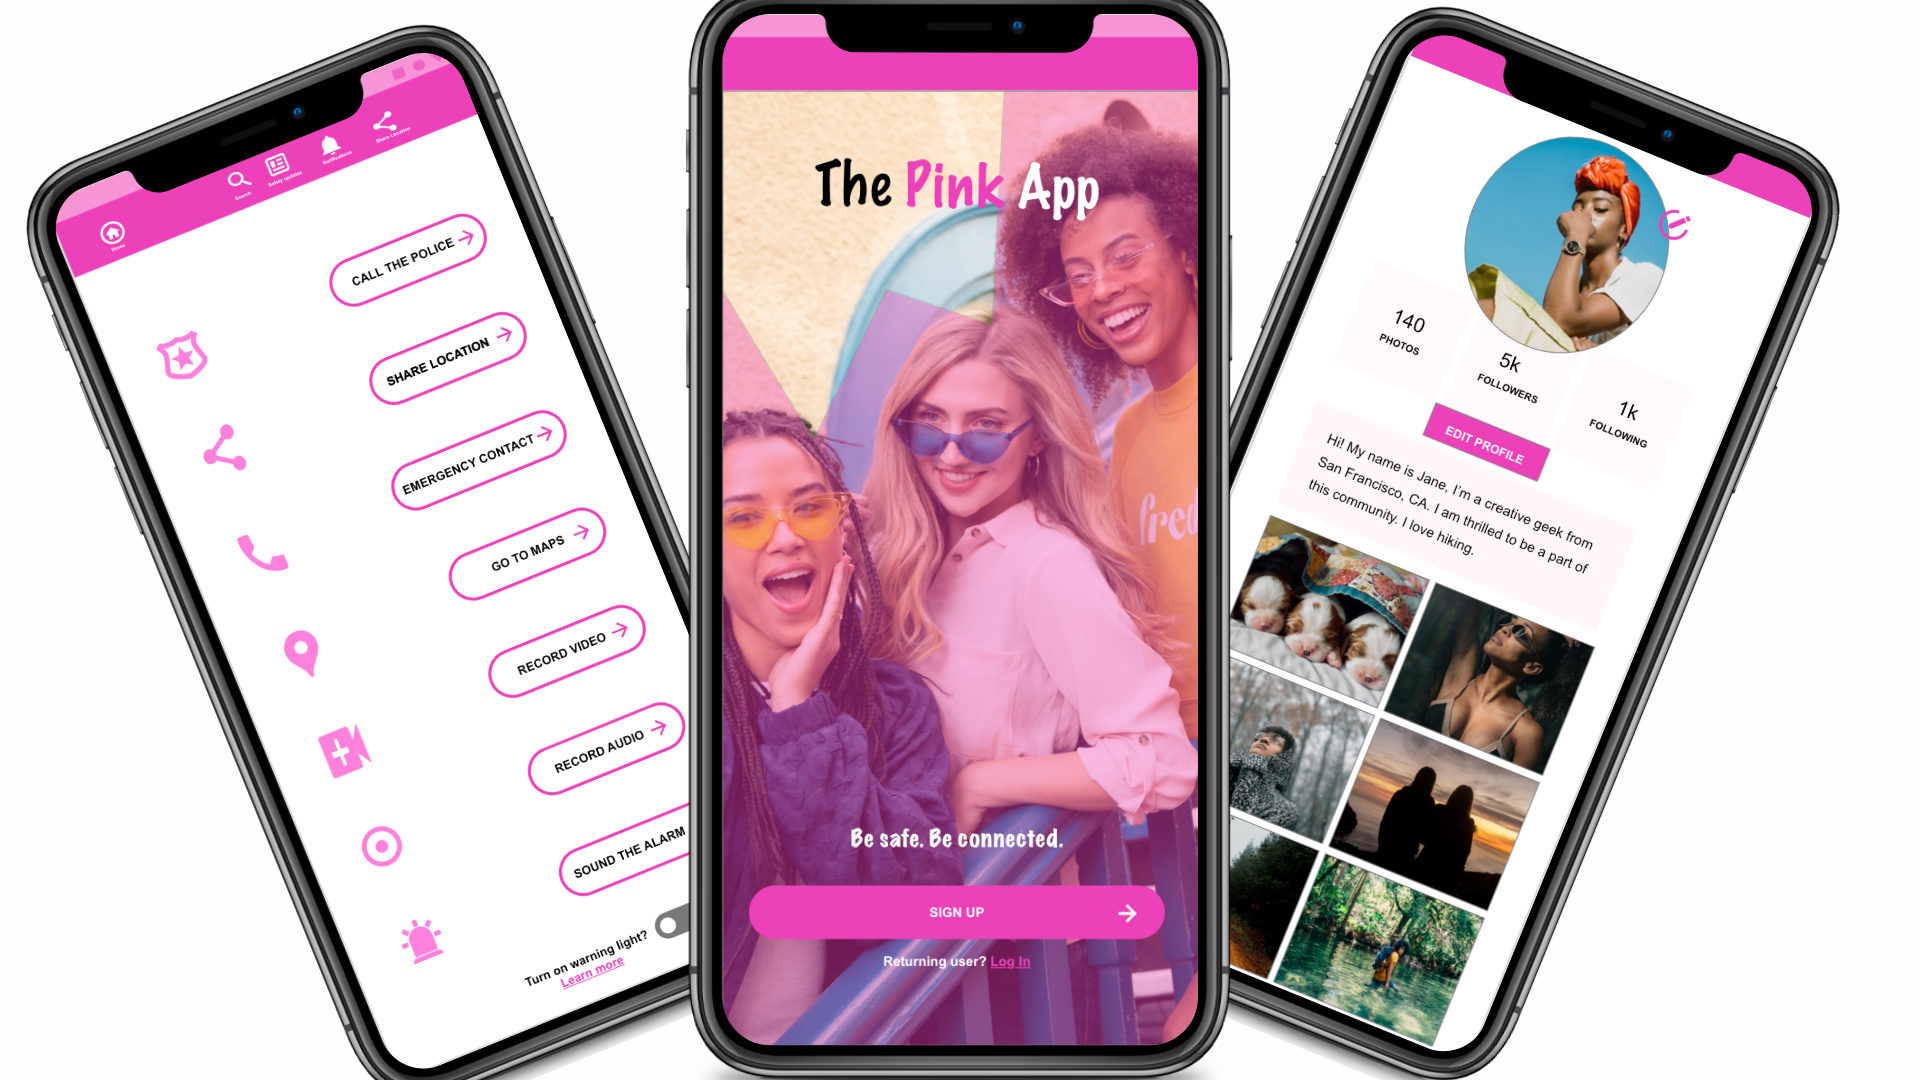 The Pink App case study